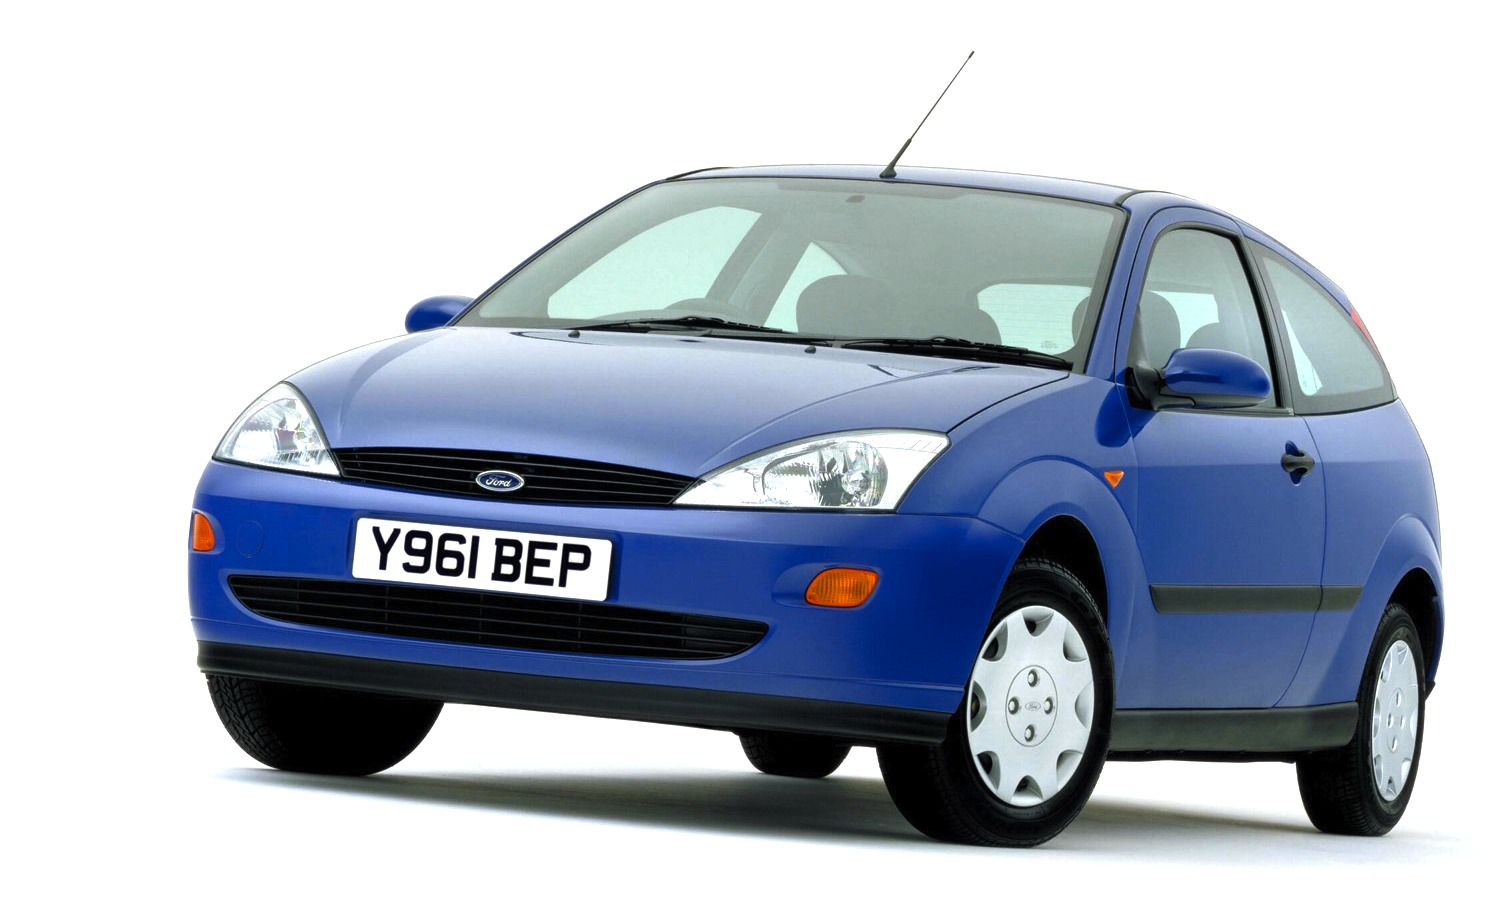 uk 1999 ford focus takes the lead vauxhall astra on podium best selling cars blog. Black Bedroom Furniture Sets. Home Design Ideas